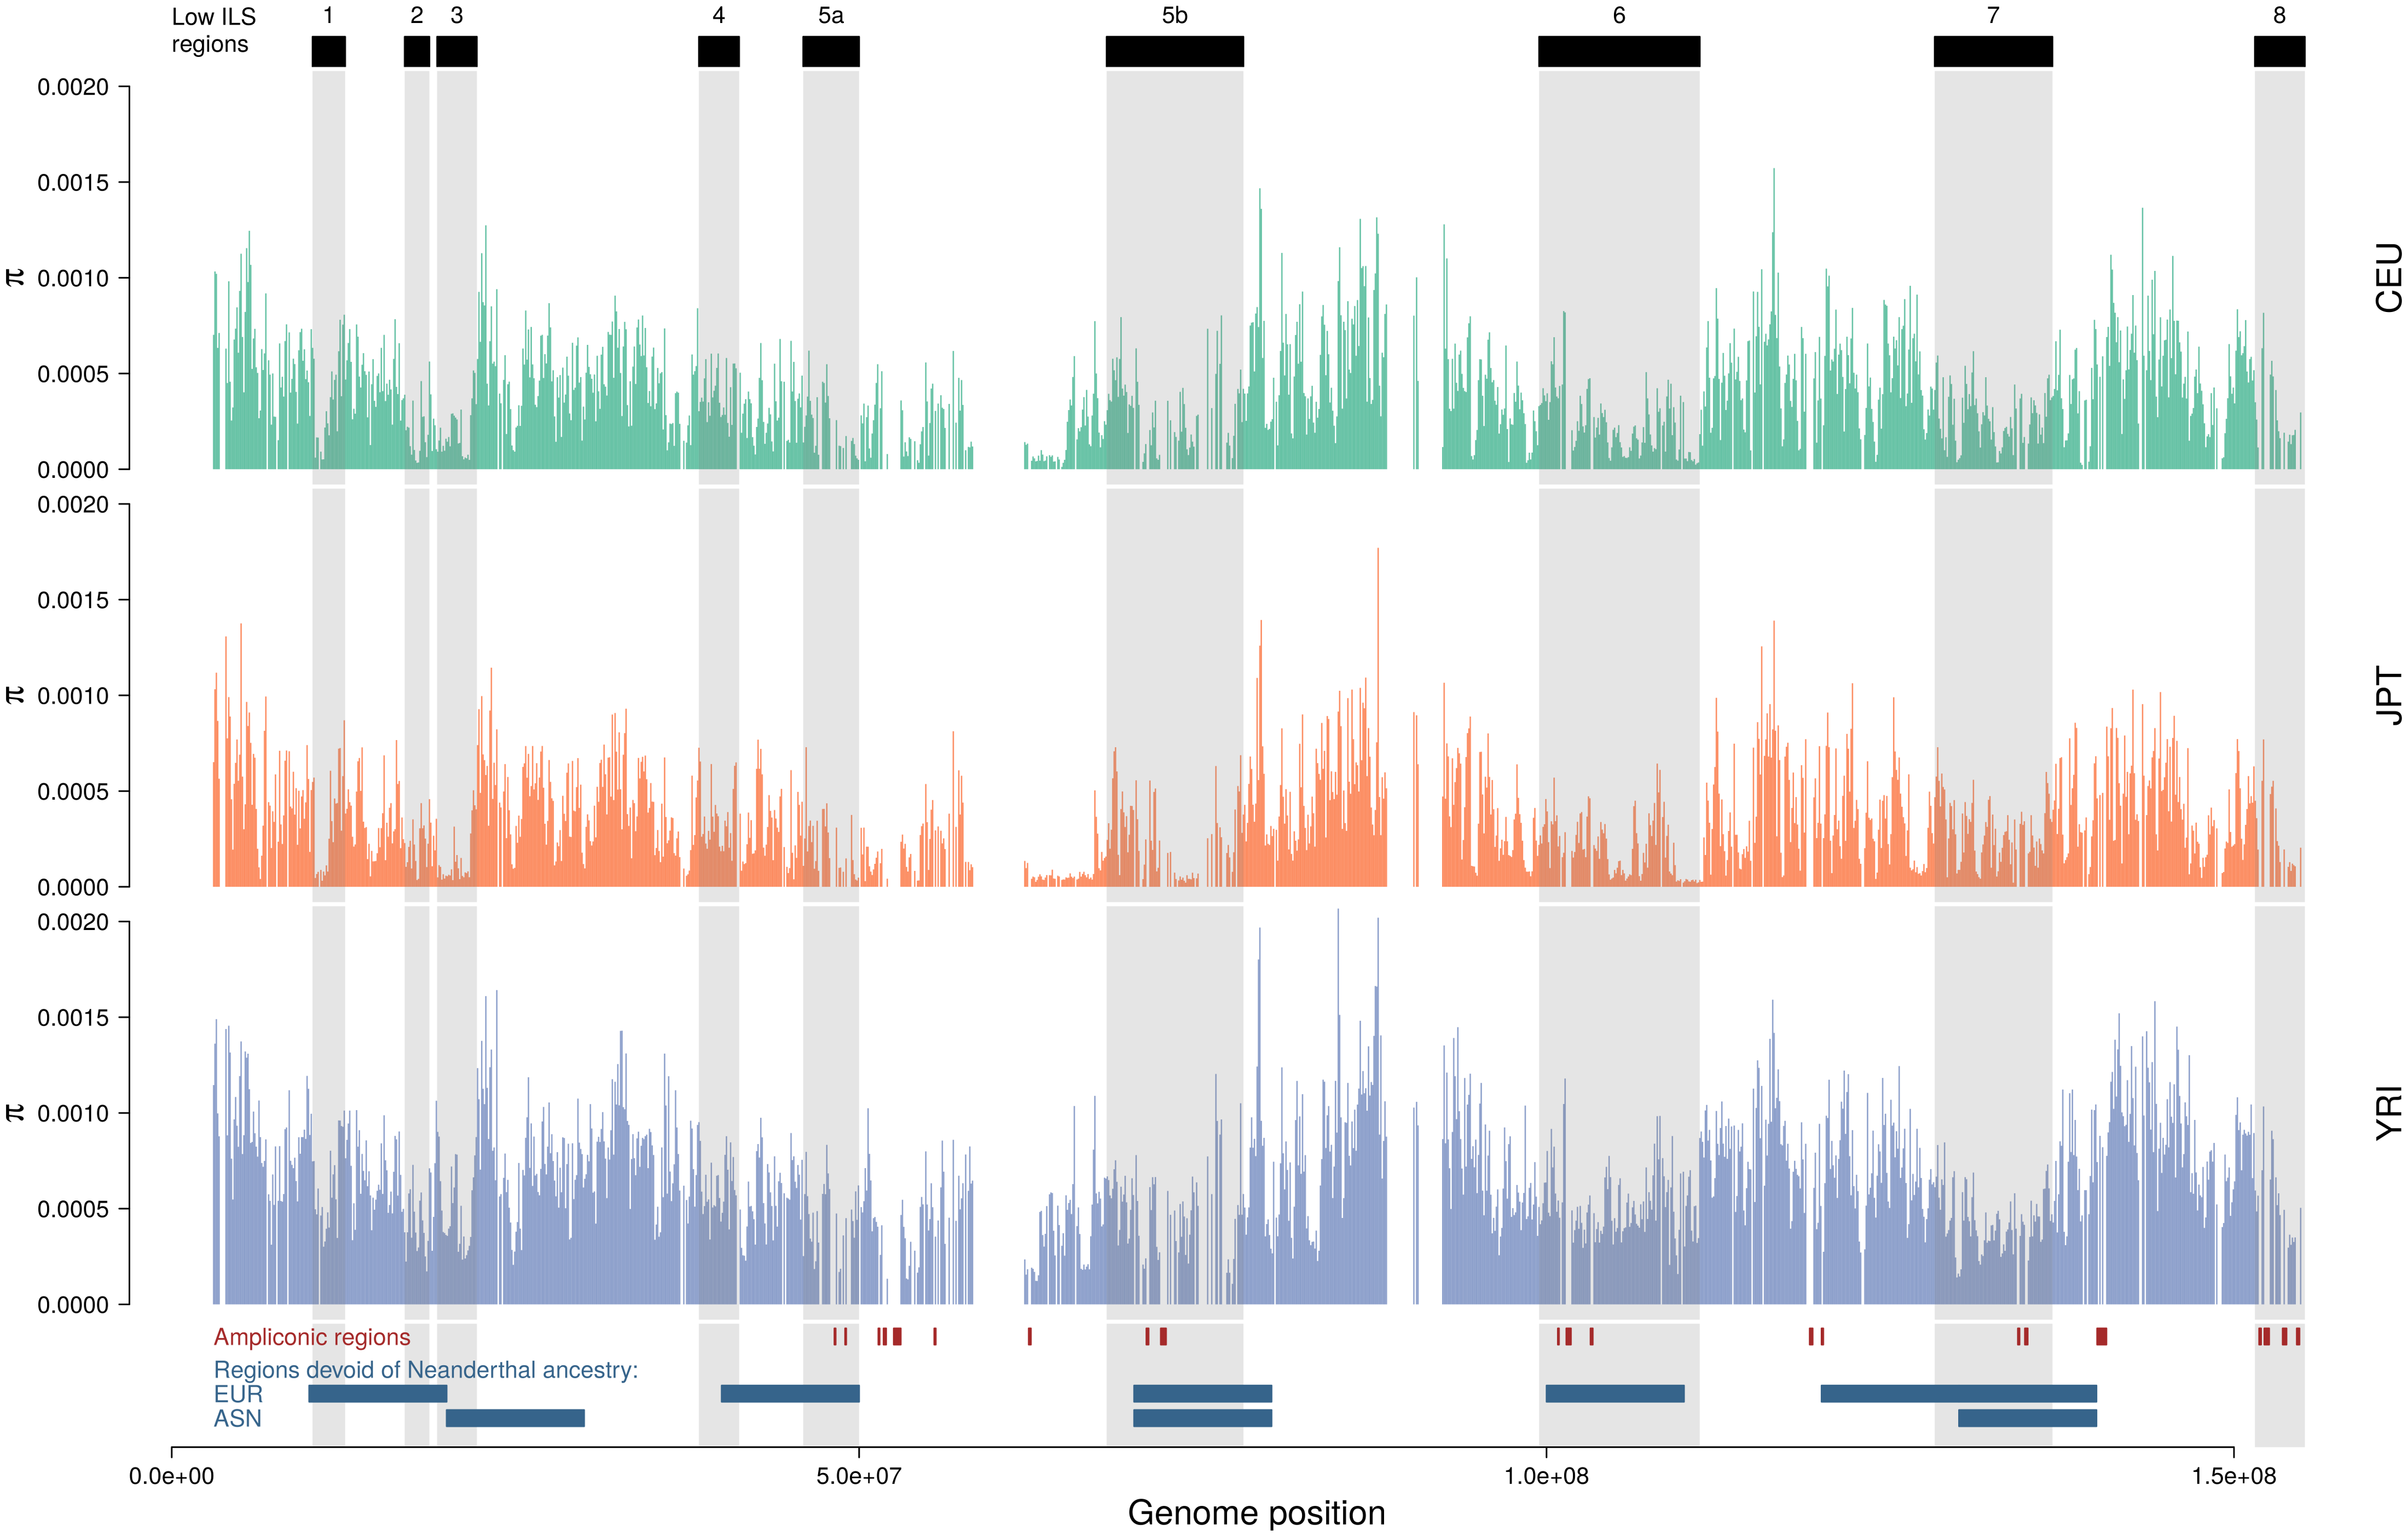 Distribution of nucleotide diversity along the X chromosome of human populations.